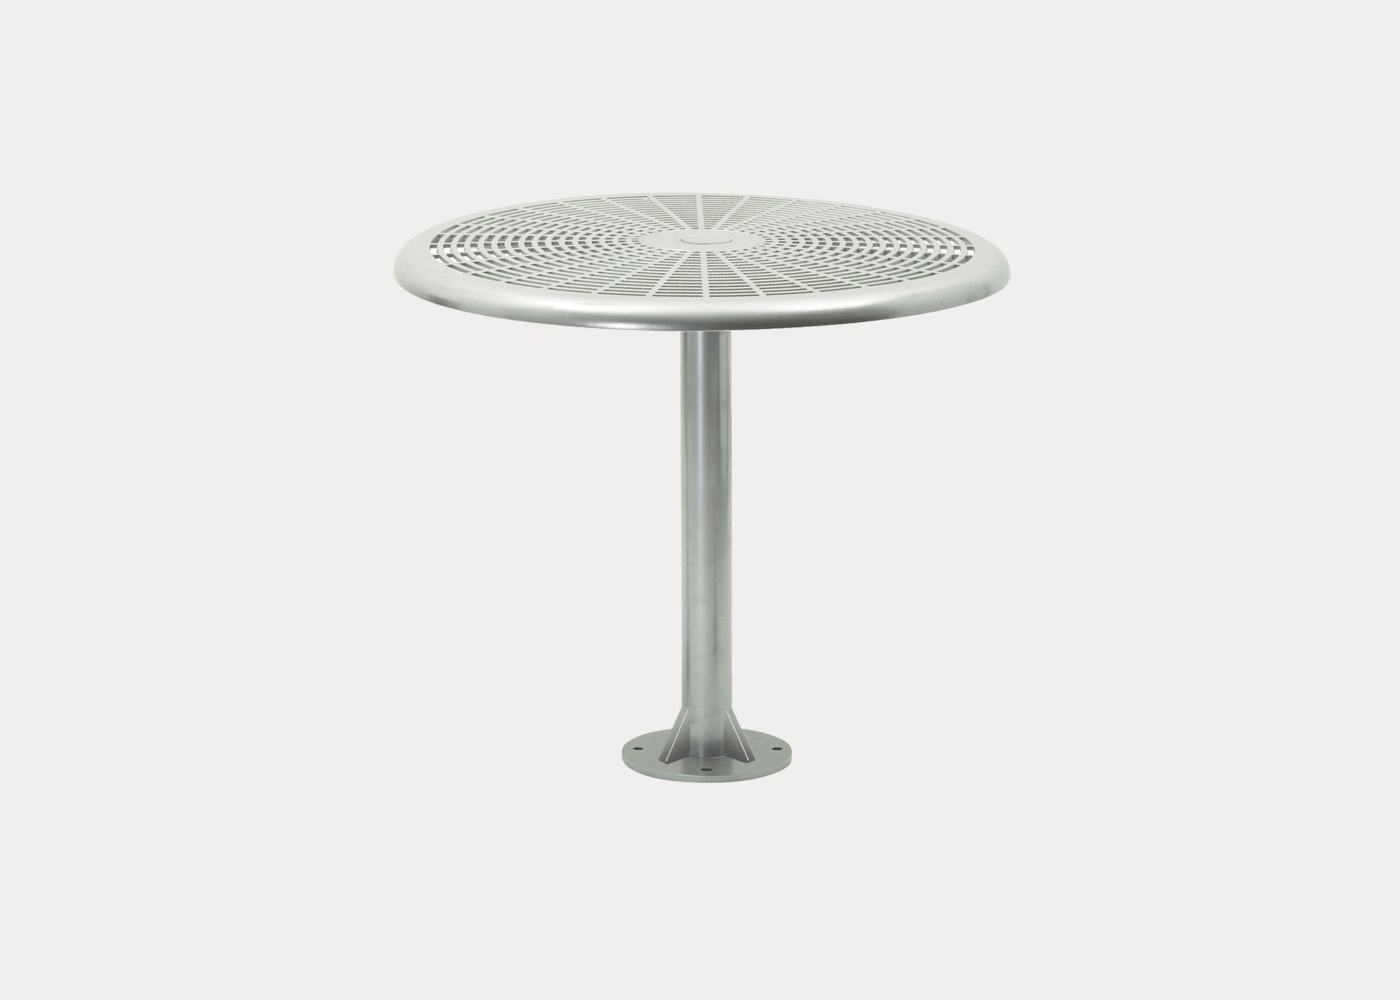 cafe heavy duty table street furniture australia